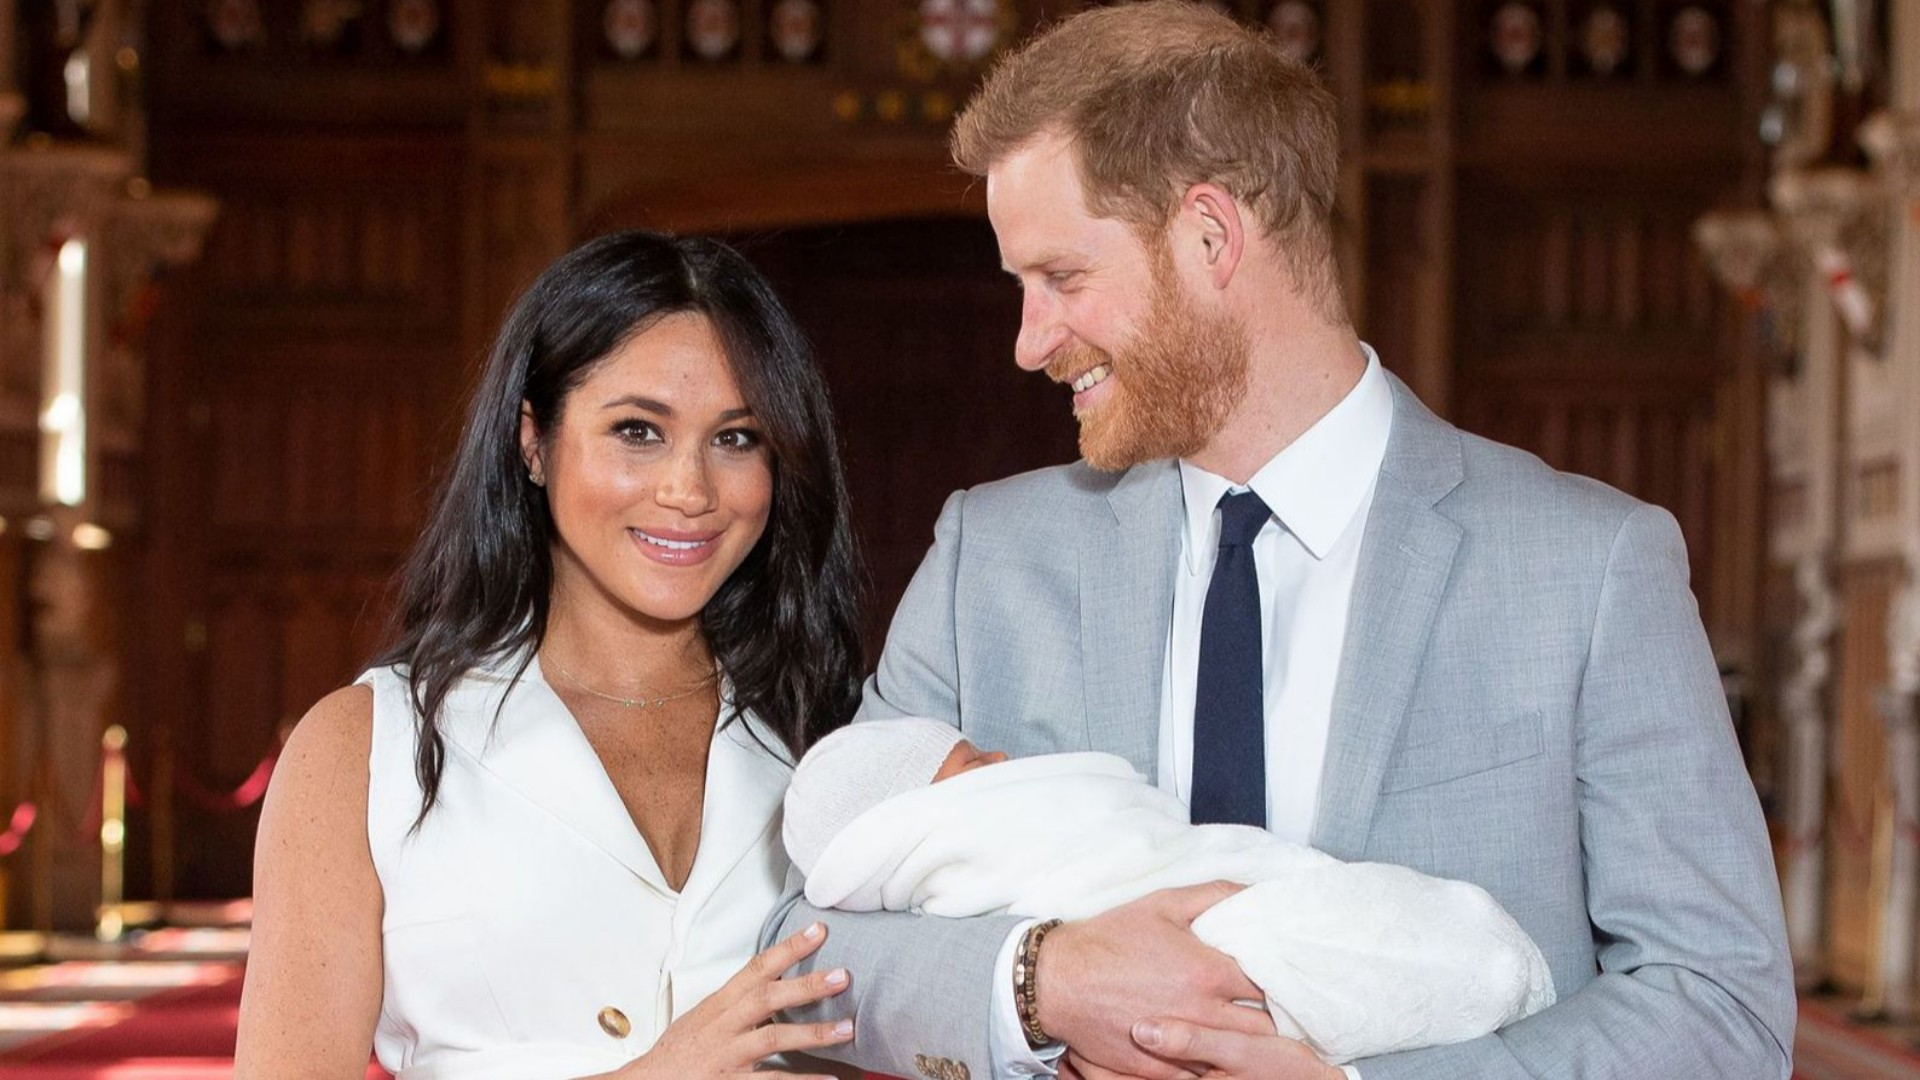 Meghan Markle and Prince Harry in St. George's Hall with Baby Archie